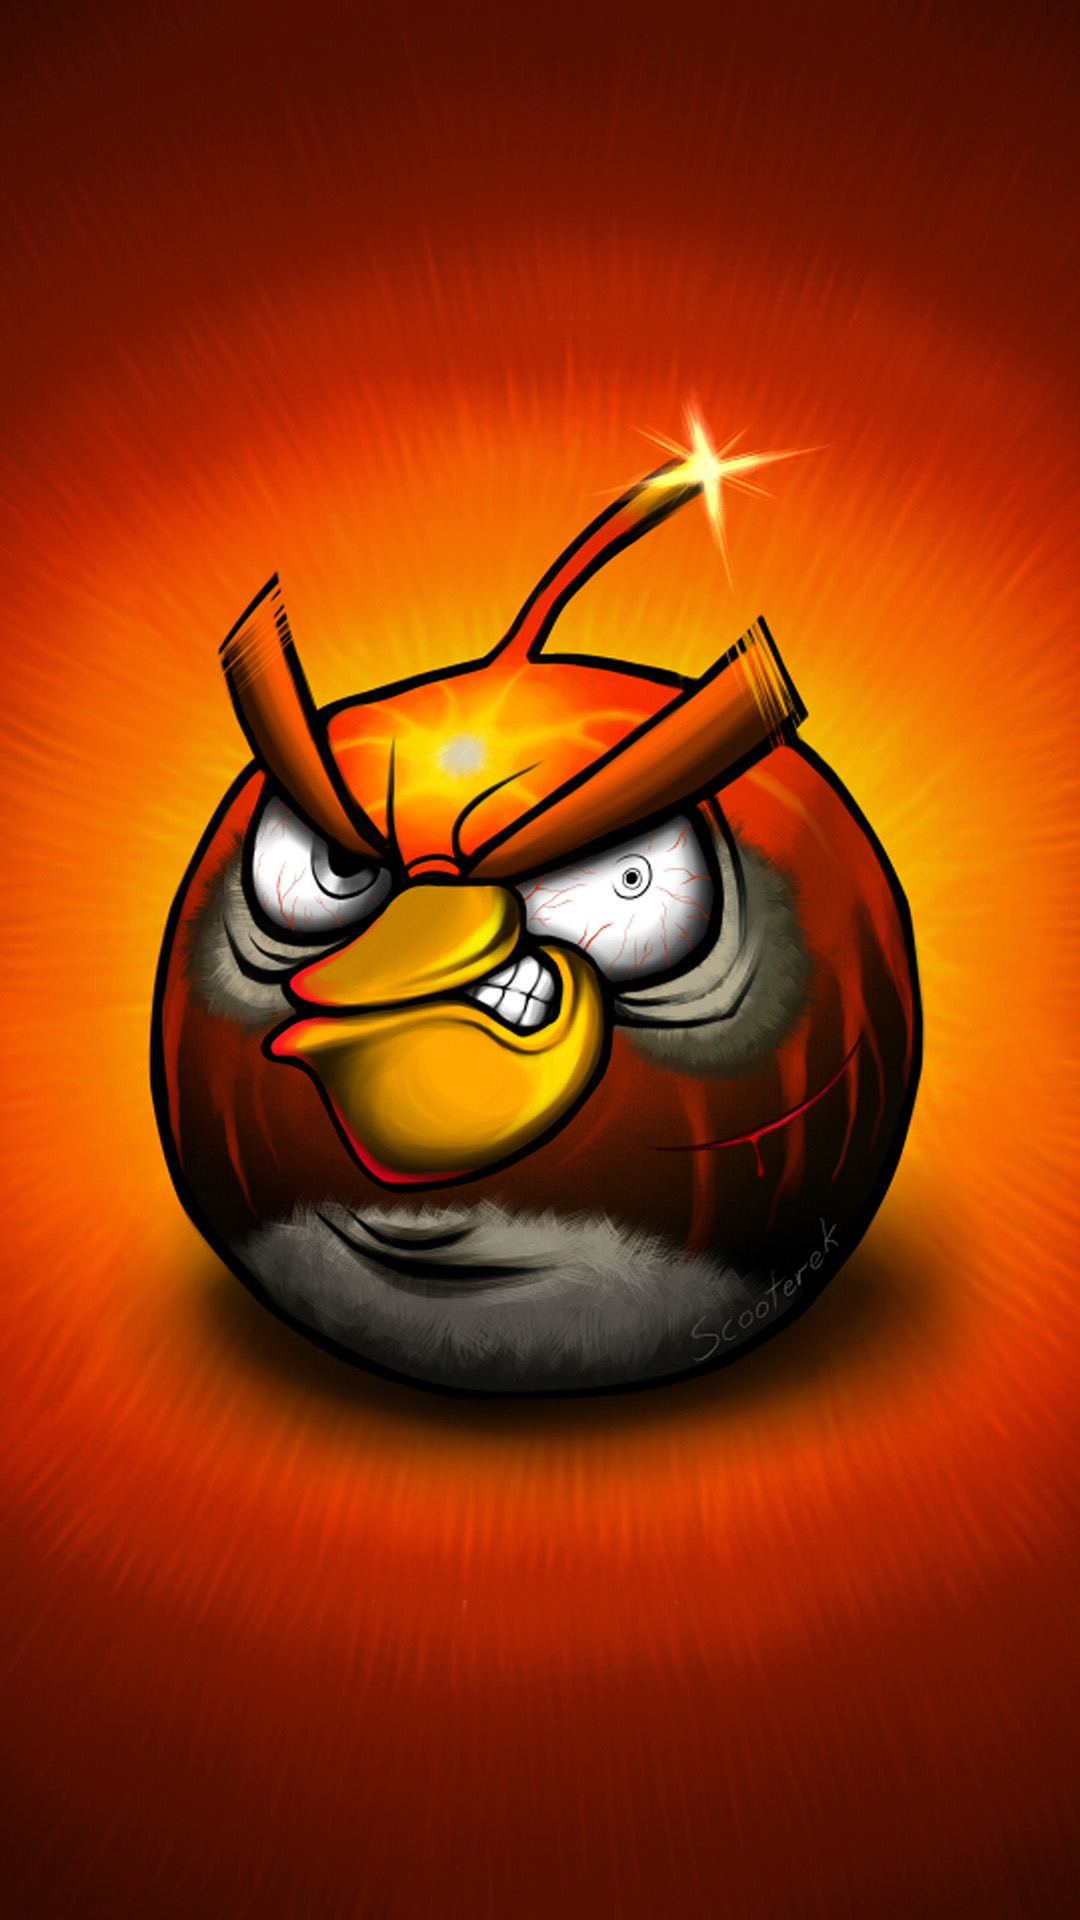 Galaxy S5 Fall Wallpaper Iphone 6 Plus Angry Birds 17 Hd Wallpaper